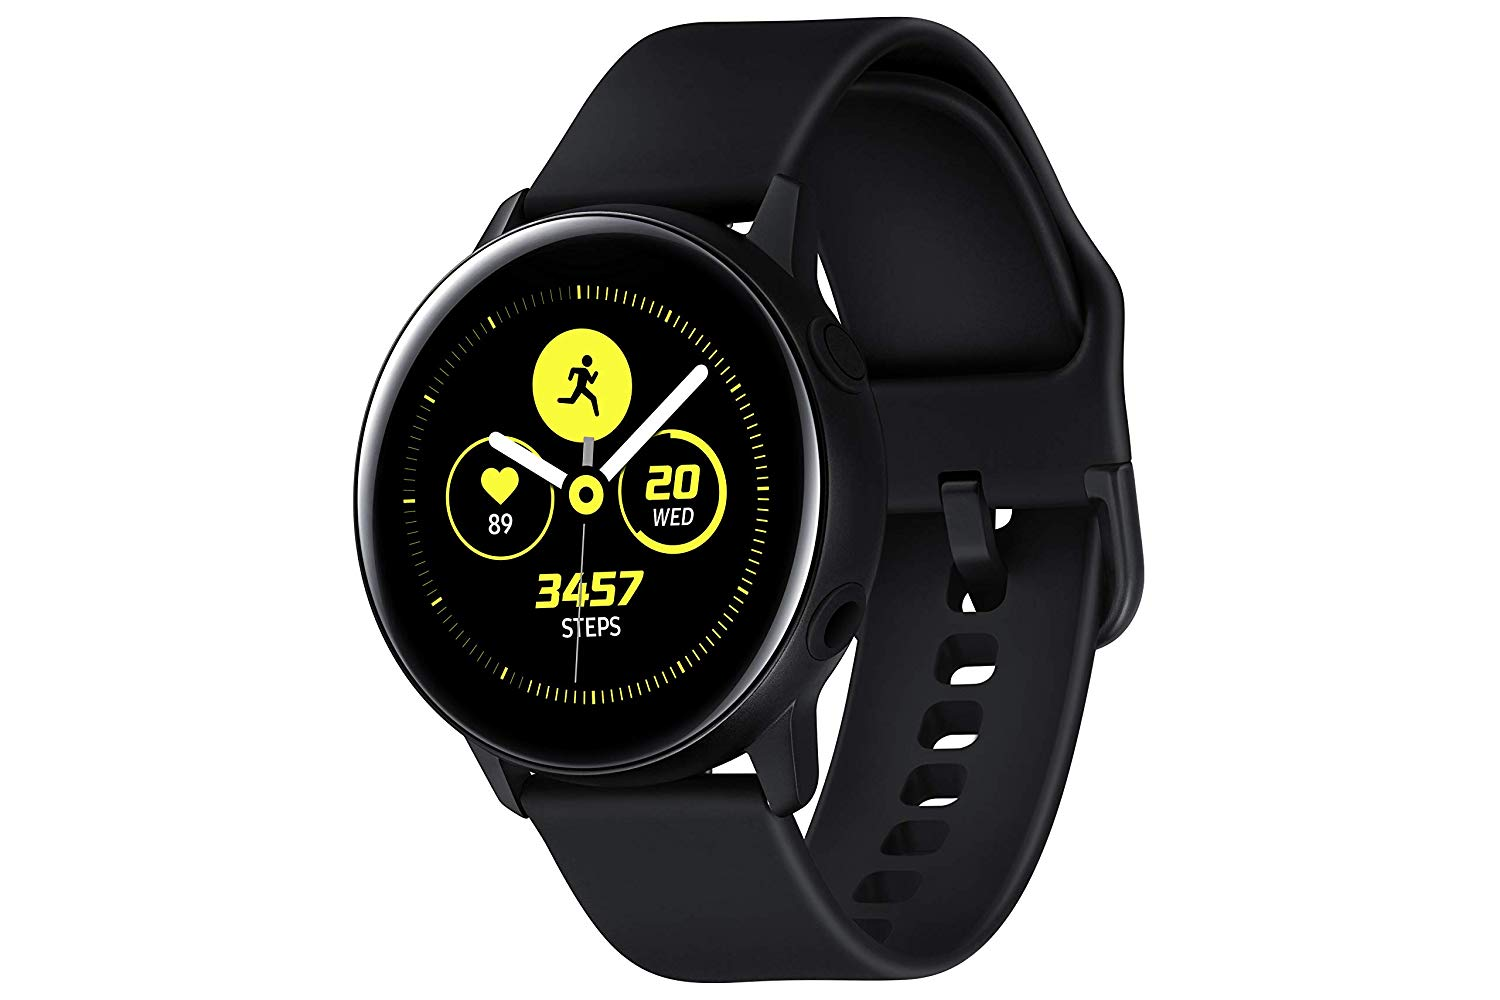 0a3ad0d872a6a0 Best Smartwatch 2019 - Top-Rated Watches for iPhone, Android | Tom's Guide